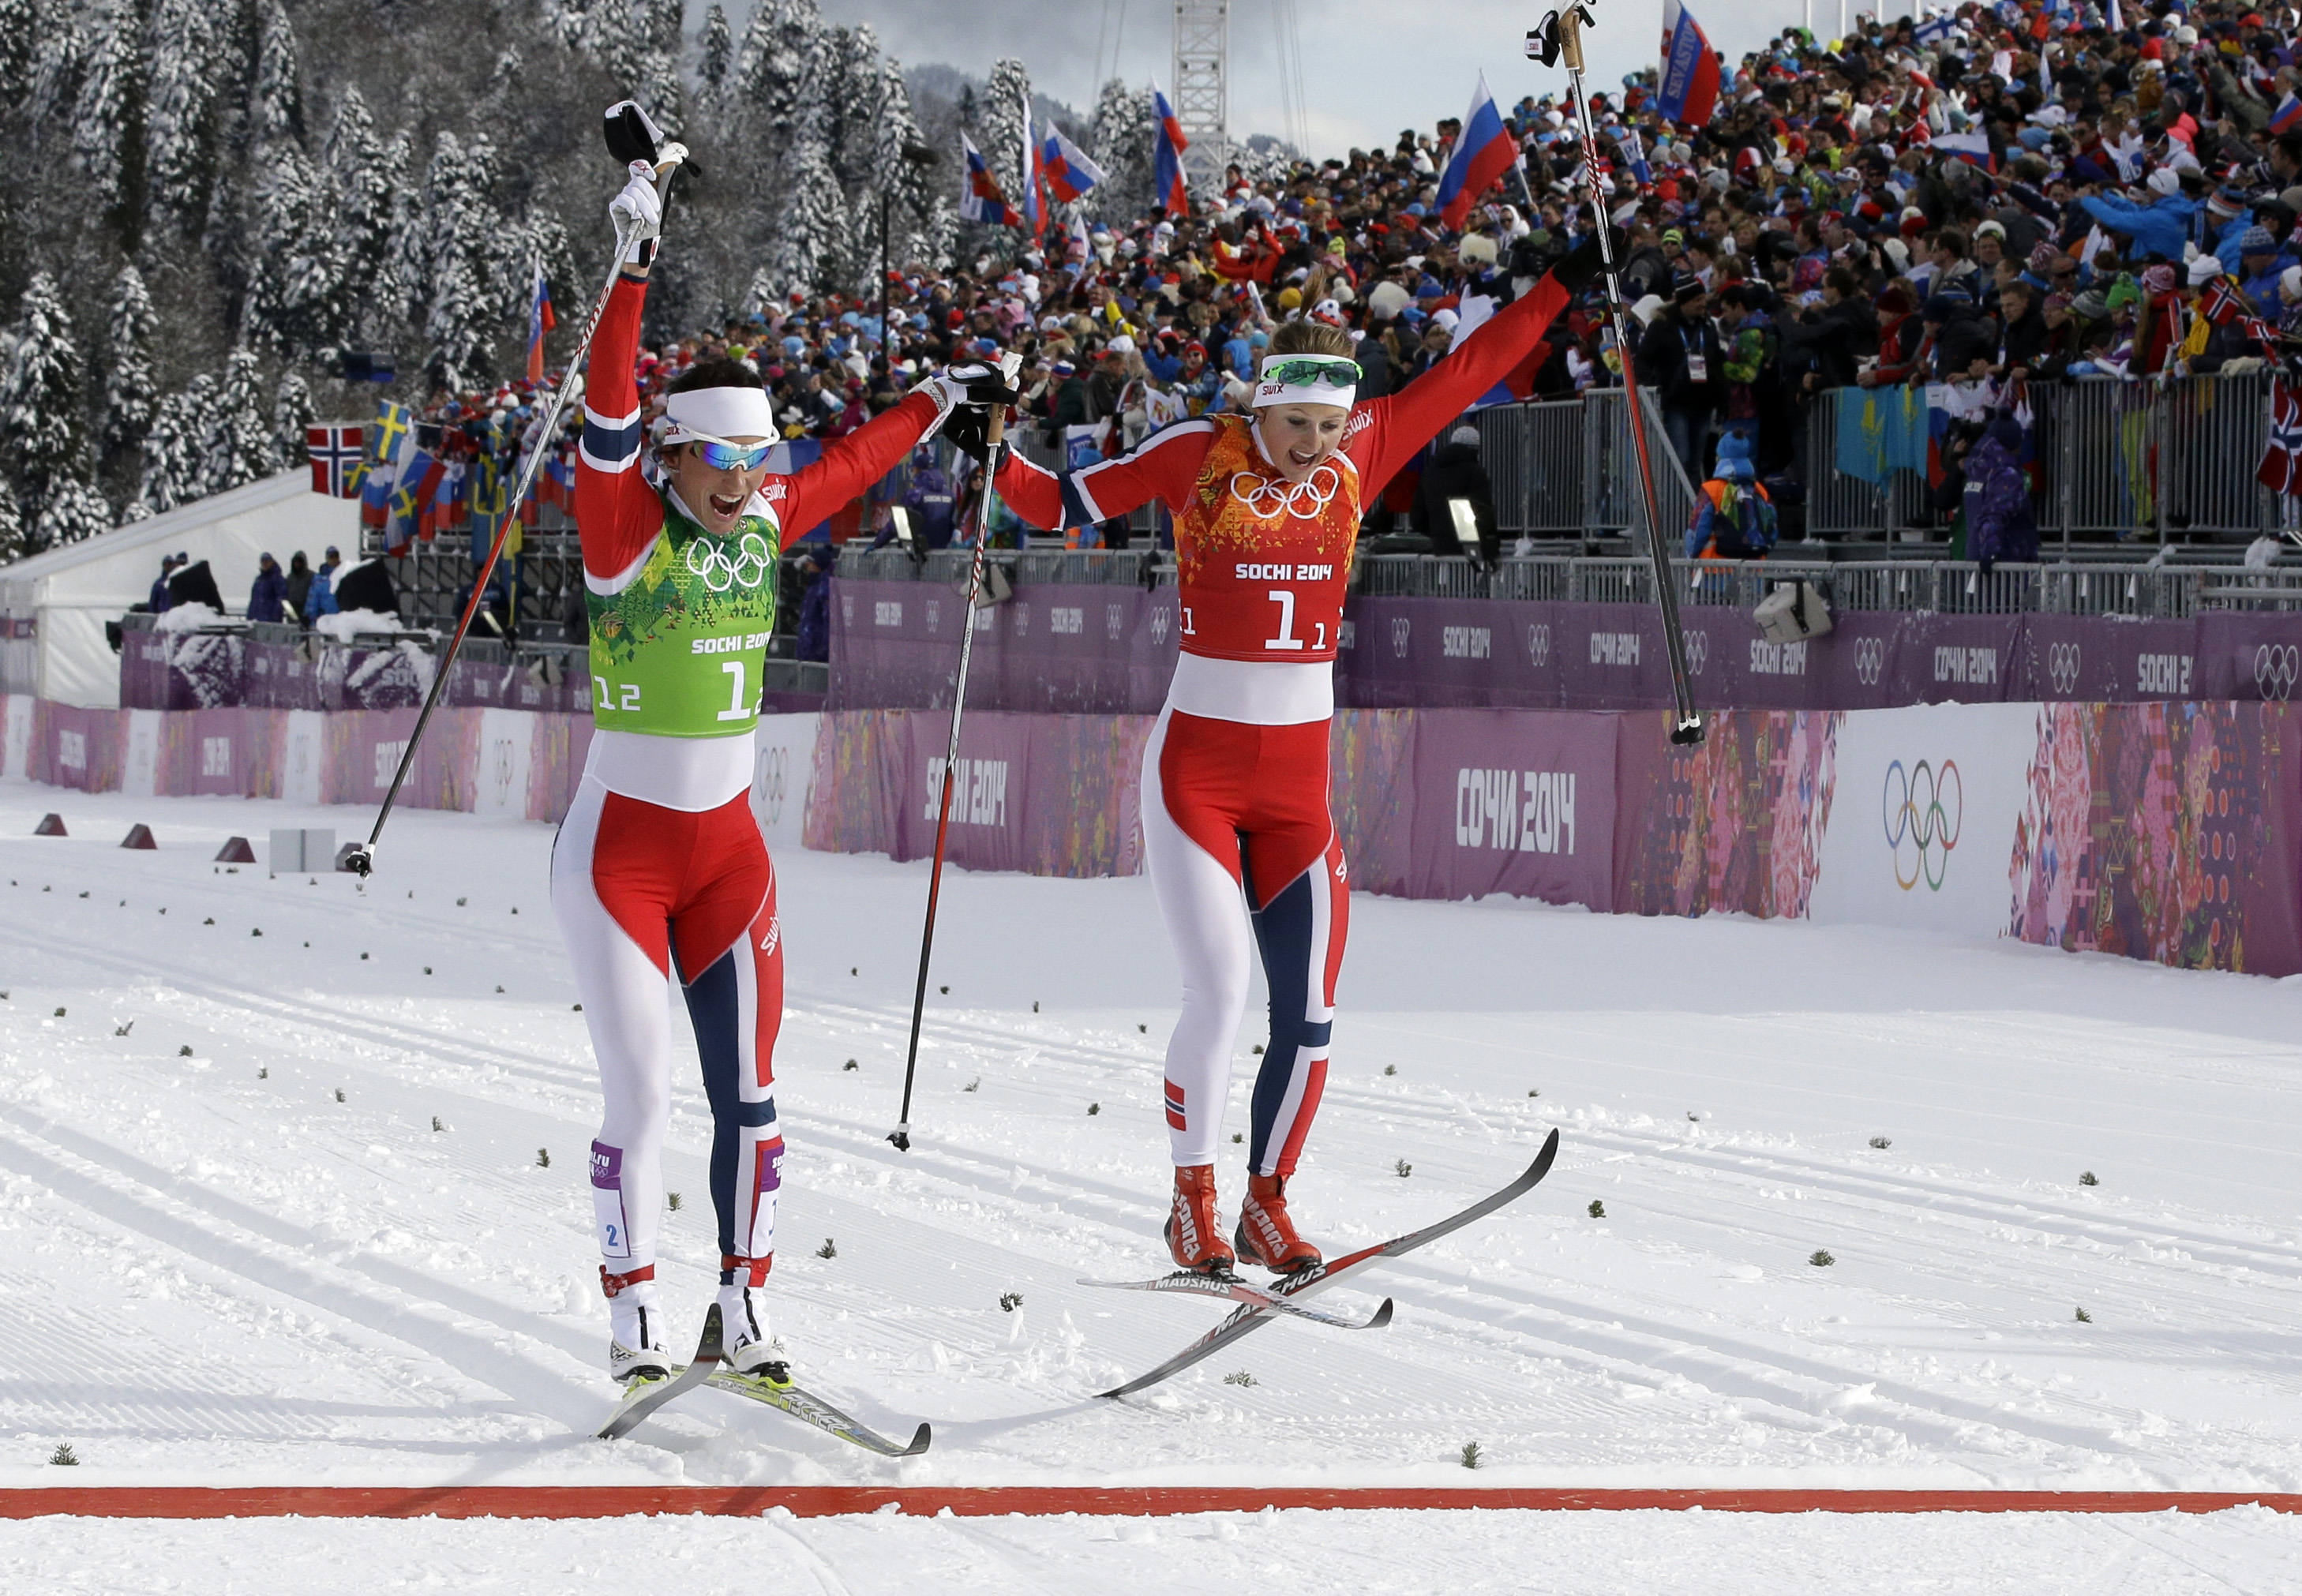 Gold medalists Norway's Marit Bjoergen (L) and Ingvild Flugstad Oestberg celebrate at the finish line in the Women's Cross-Country Skiing Team Sprint Classic Final at the Laura Cross-Country Ski and Biathlon Center.